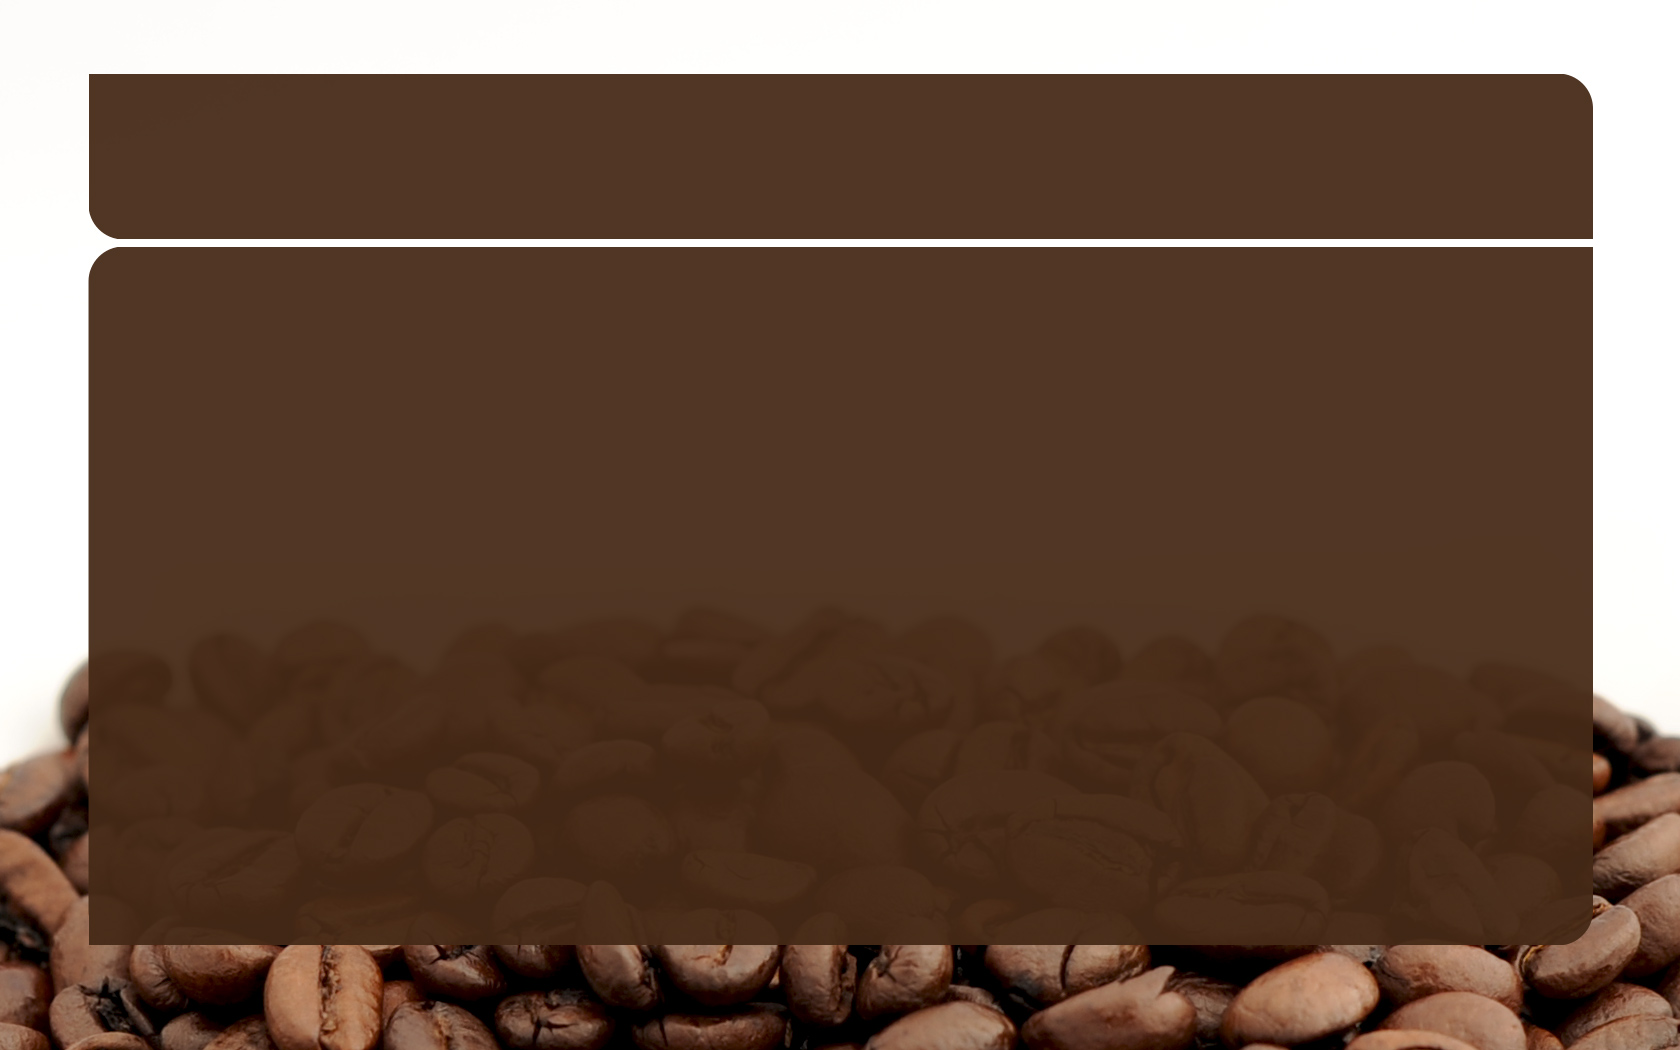 coffee powerpoint powerpoint template « ppt backgrounds templates, Presentation templates